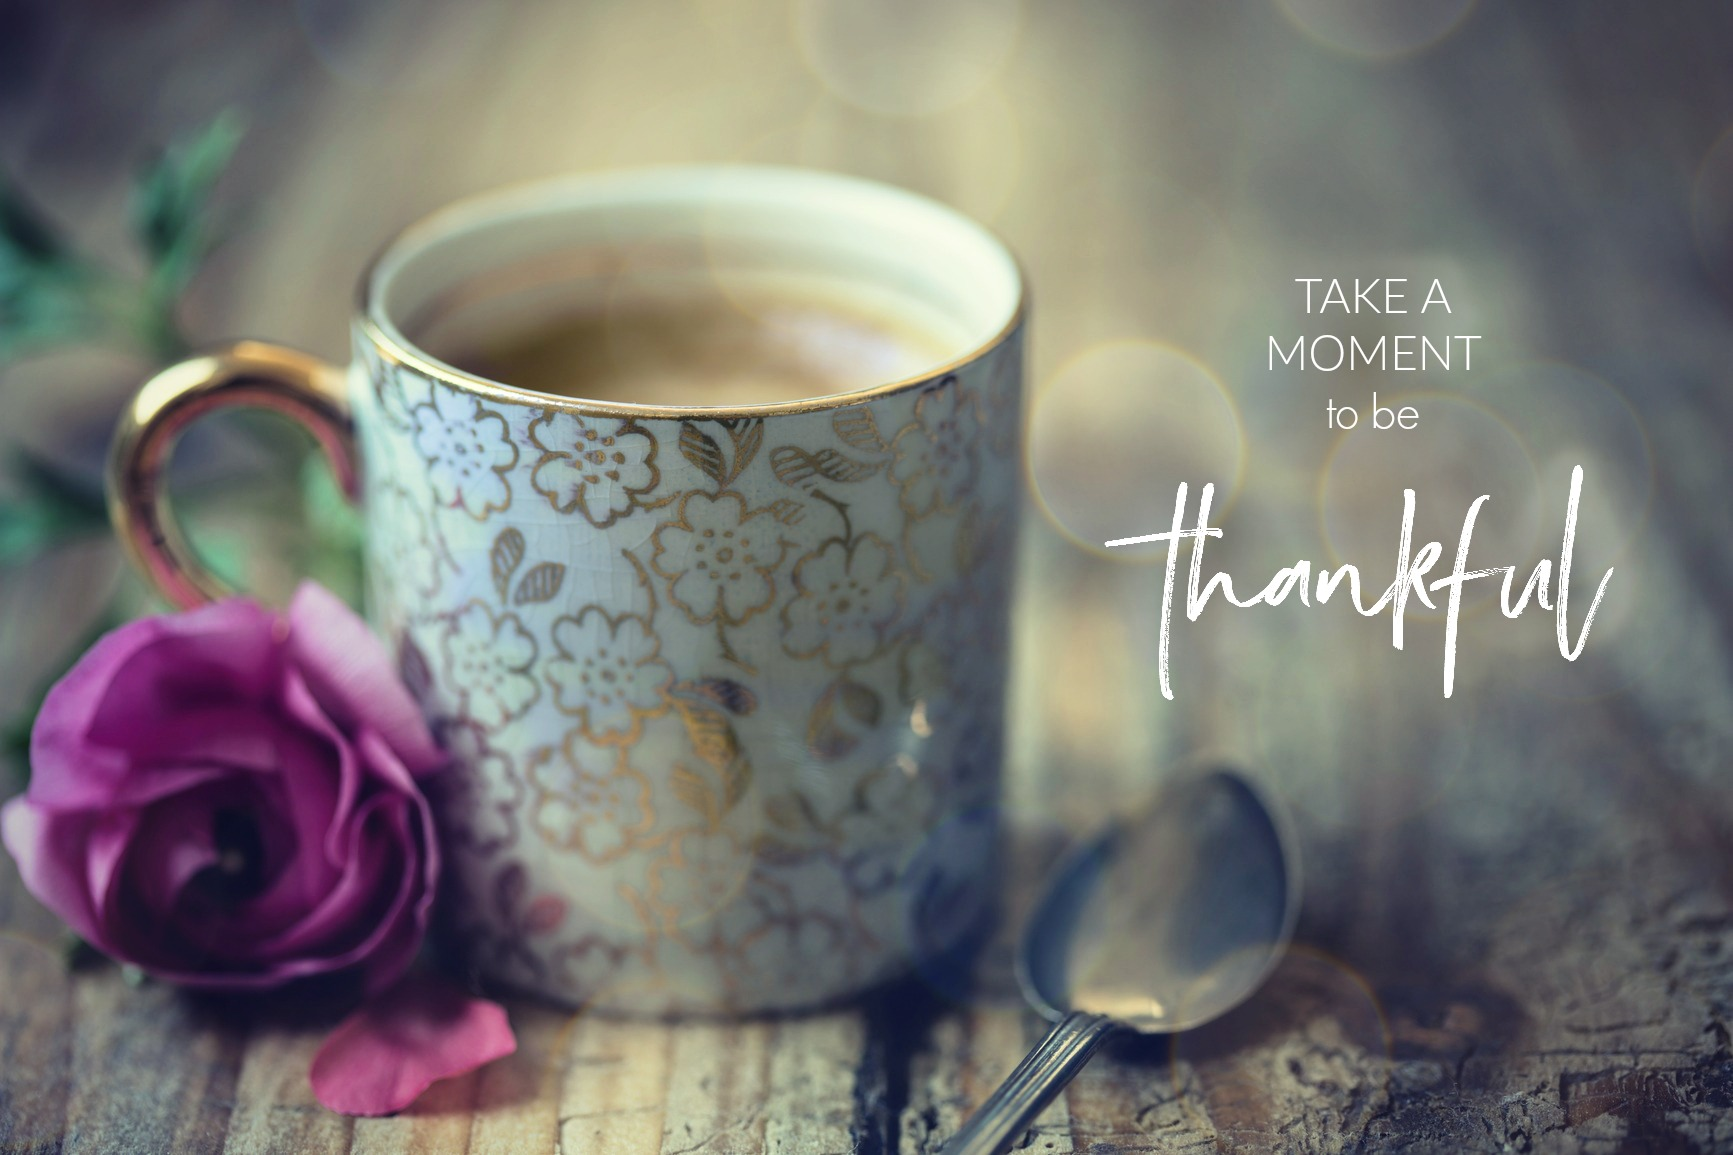 Take a Moment - A Gratitude Printable